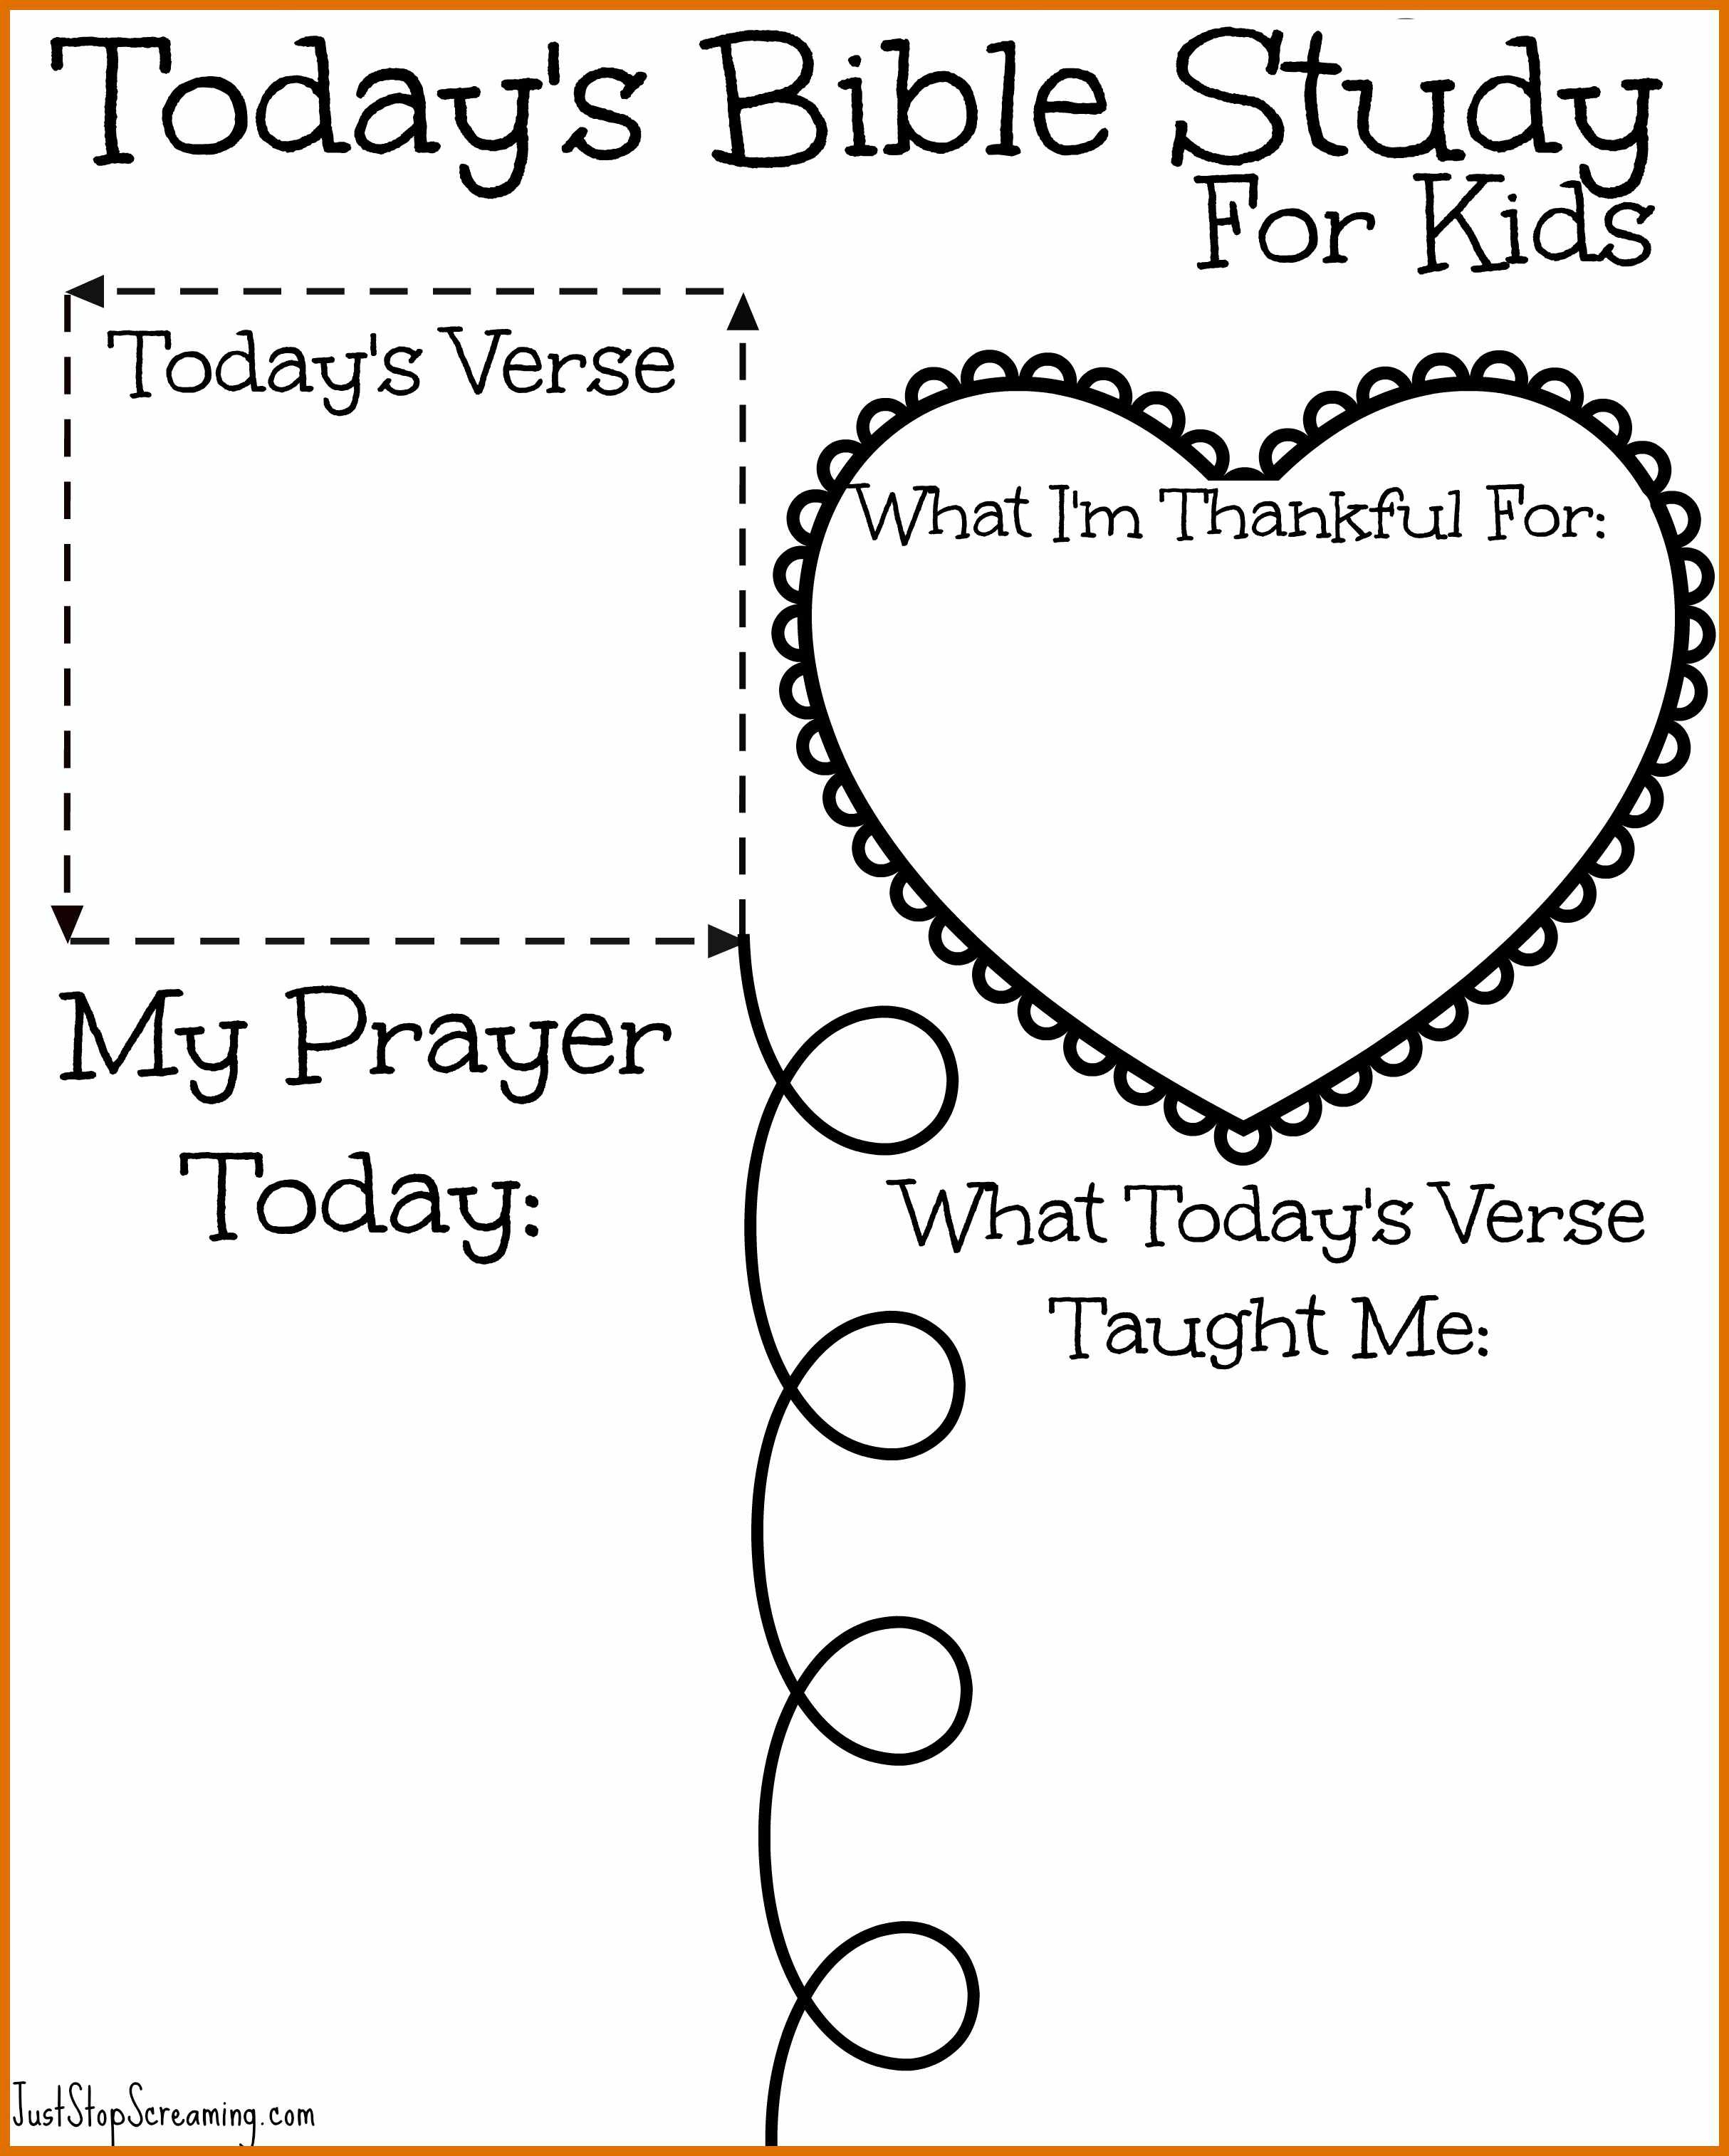 8-9 Free Printable Bible Study Worksheets | Sowtemplate - Free Printable Bible Games For Youth